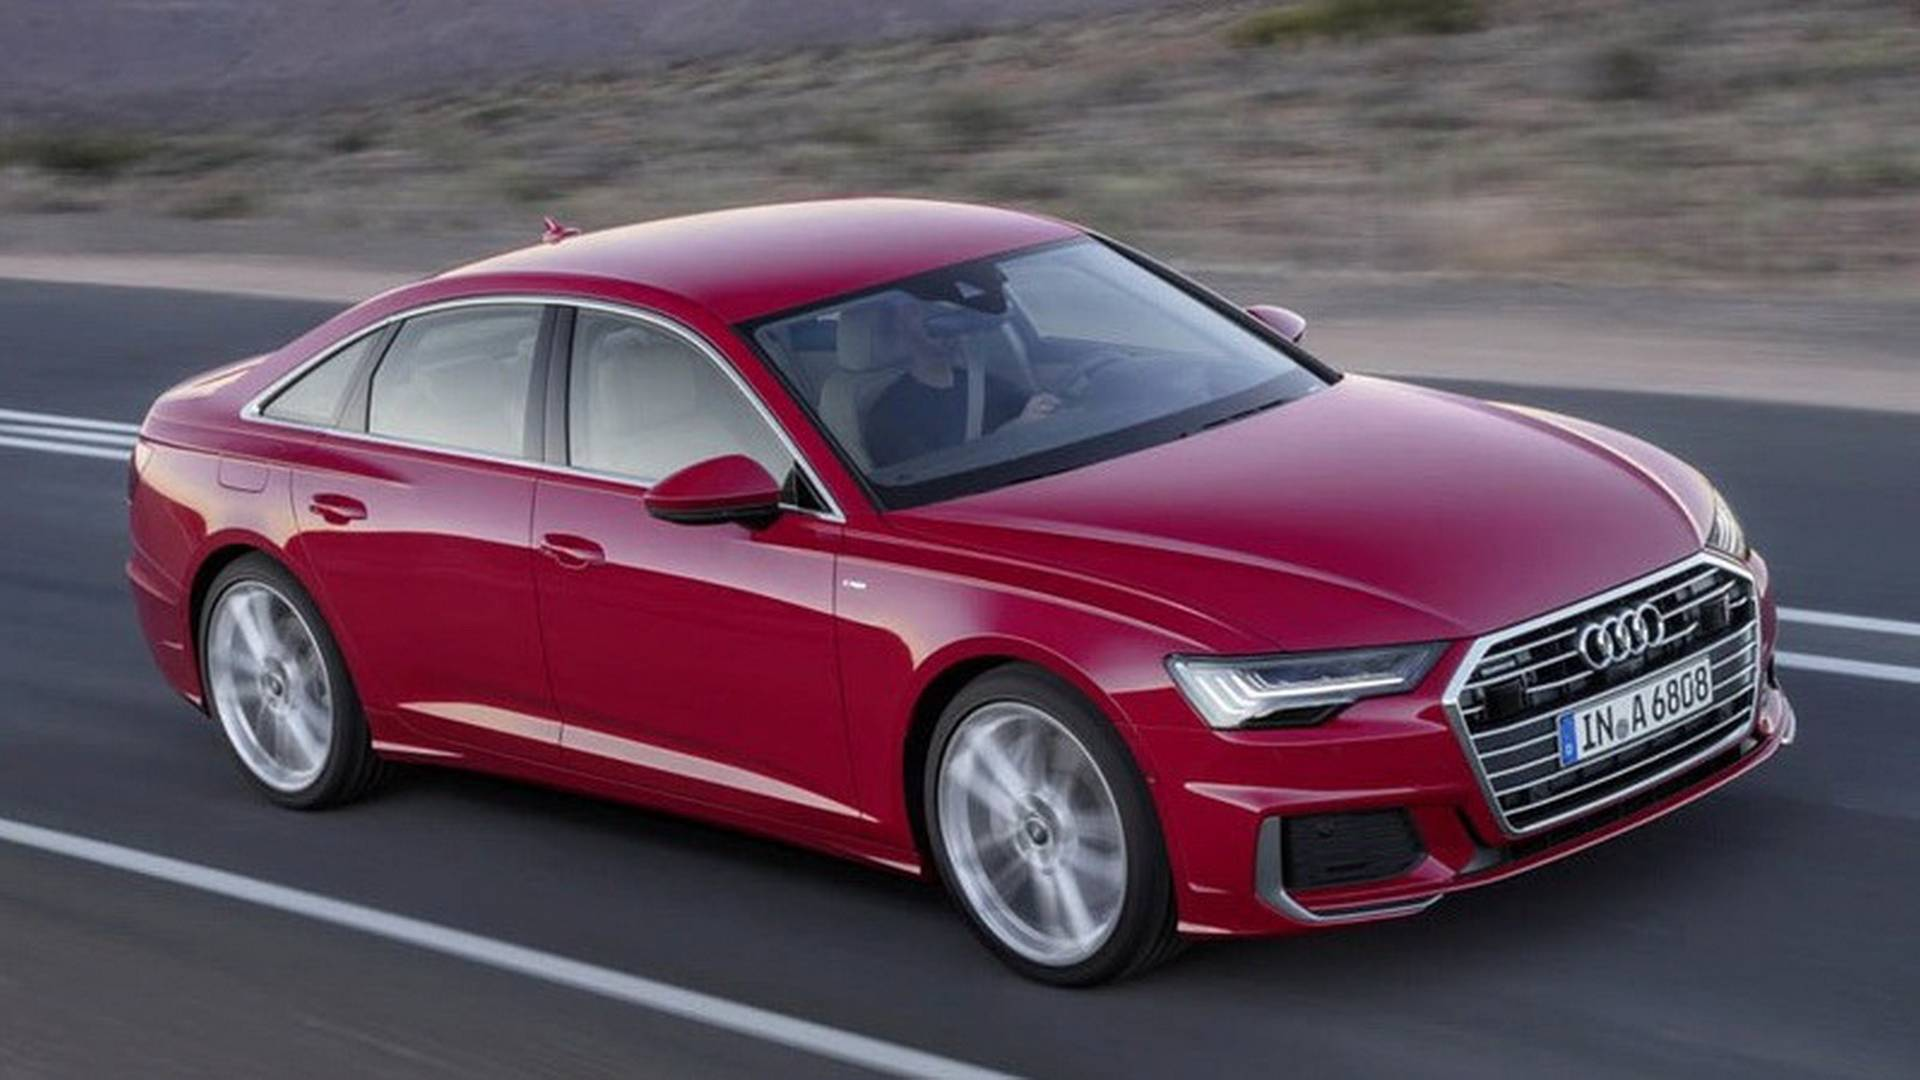 2019-audi-a6-leaked-official-image-not-c